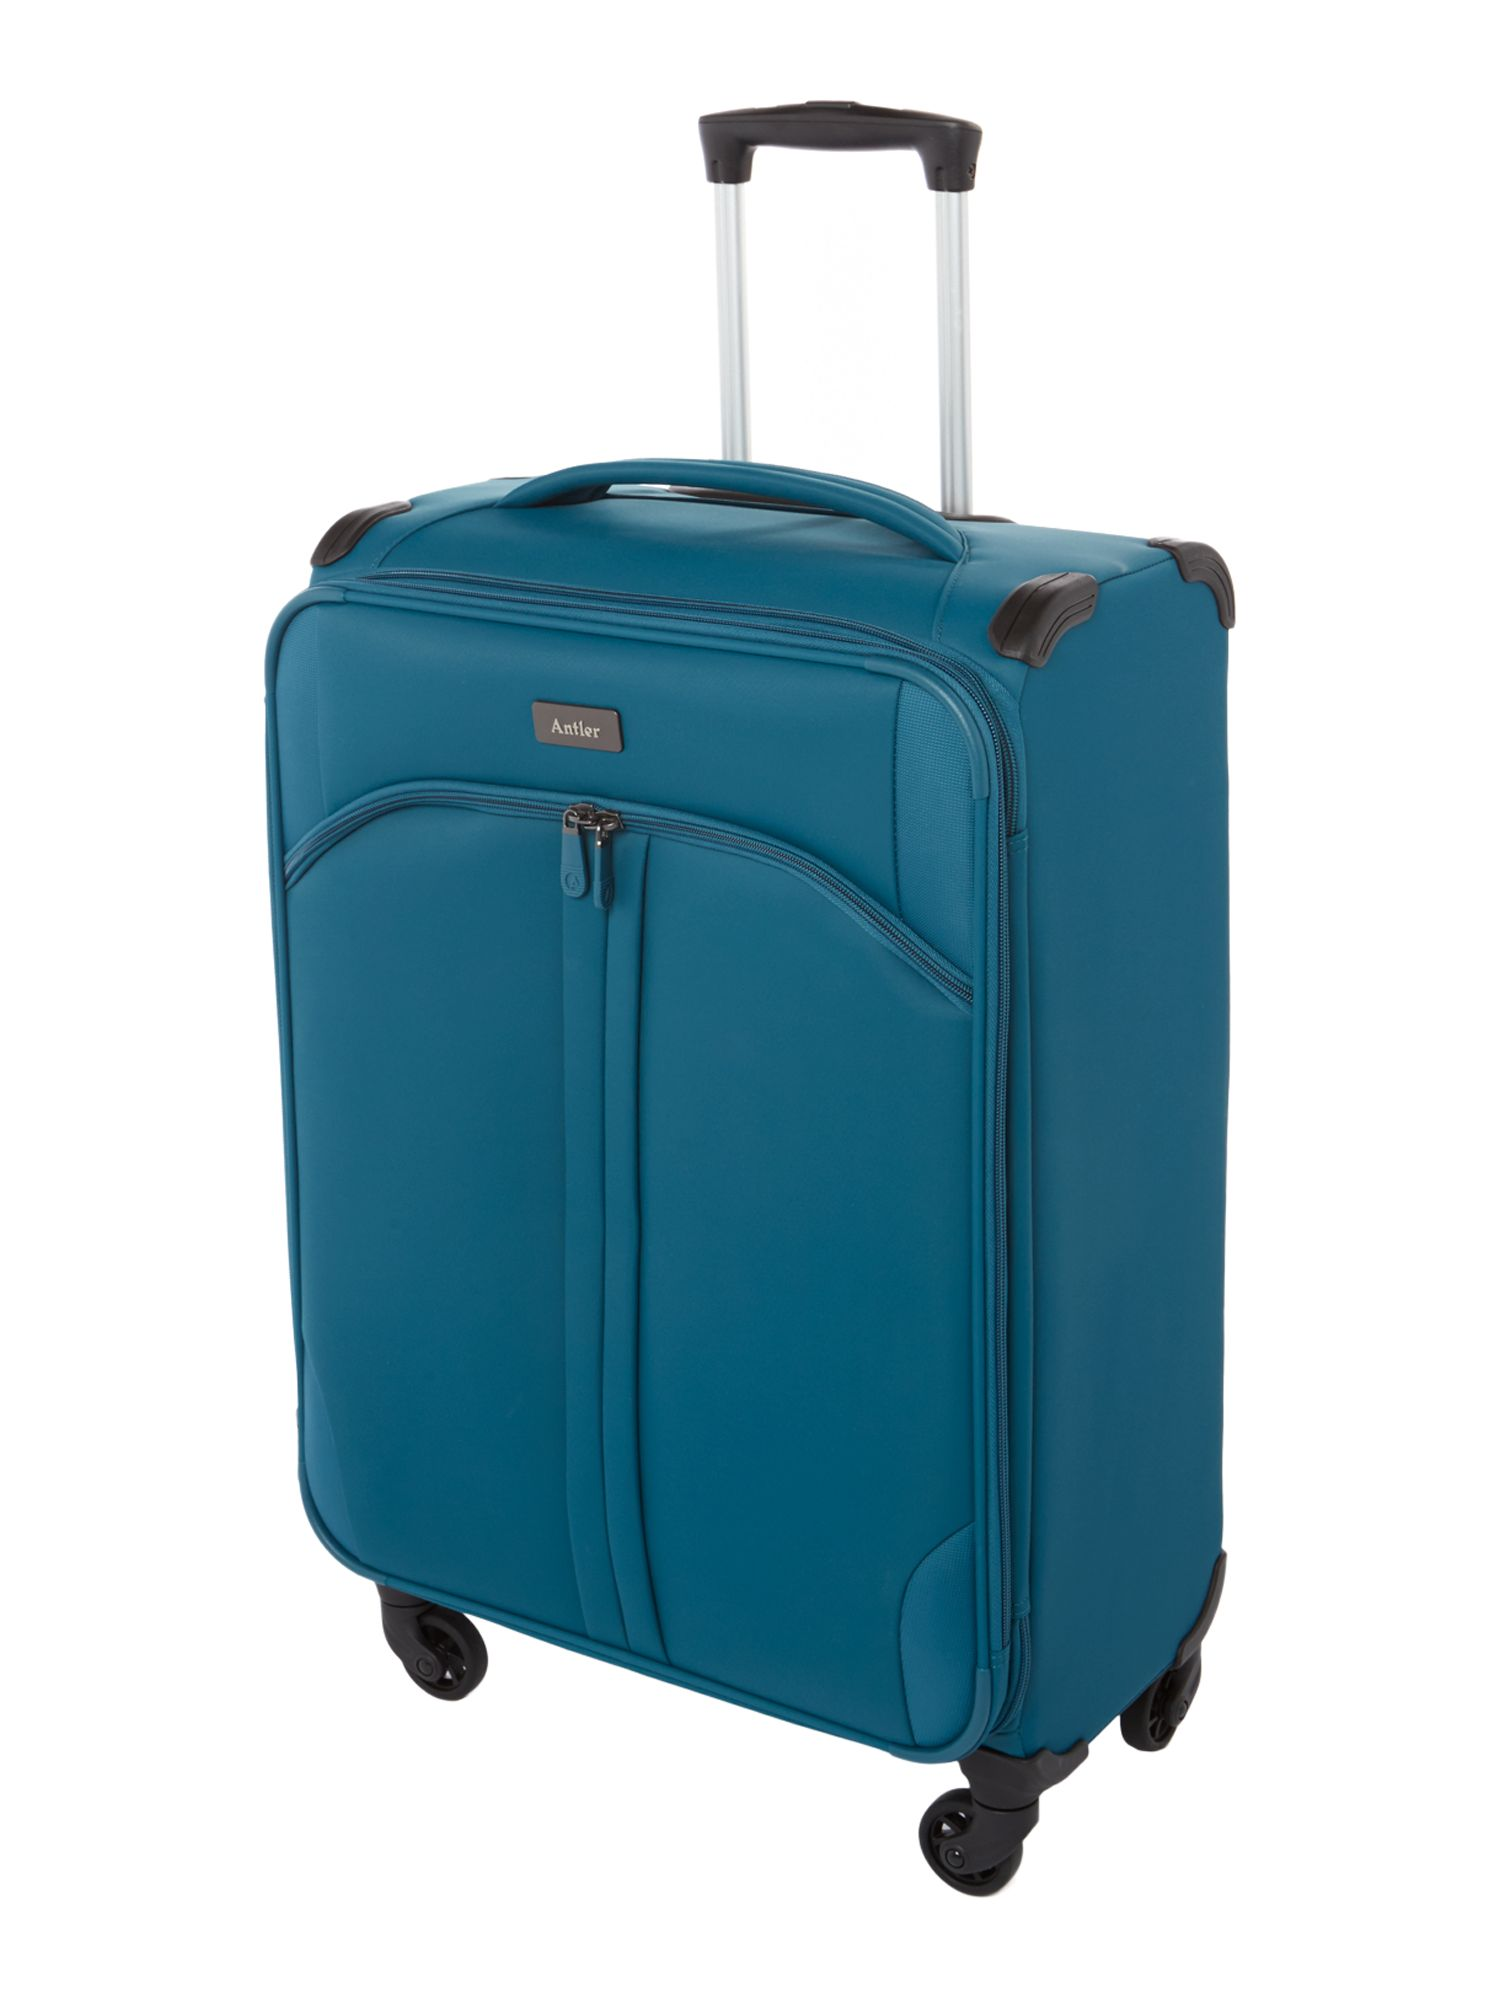 Antler Aire teal 4 wheel  medium suitcase Teal